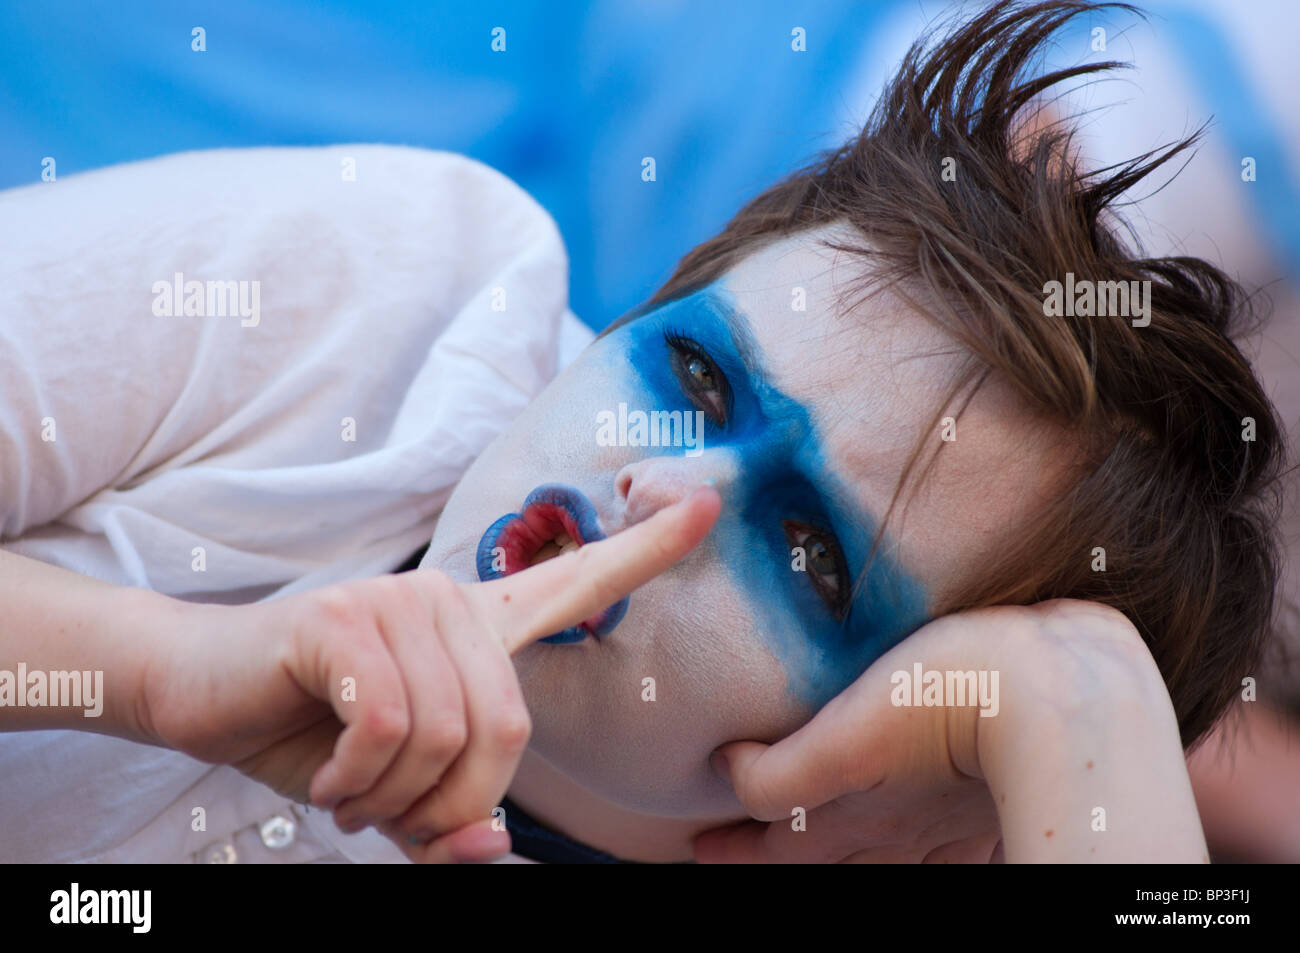 Performer at Edinburgh's fringe festival with face painted in Scotland's national colours. Stock Photo